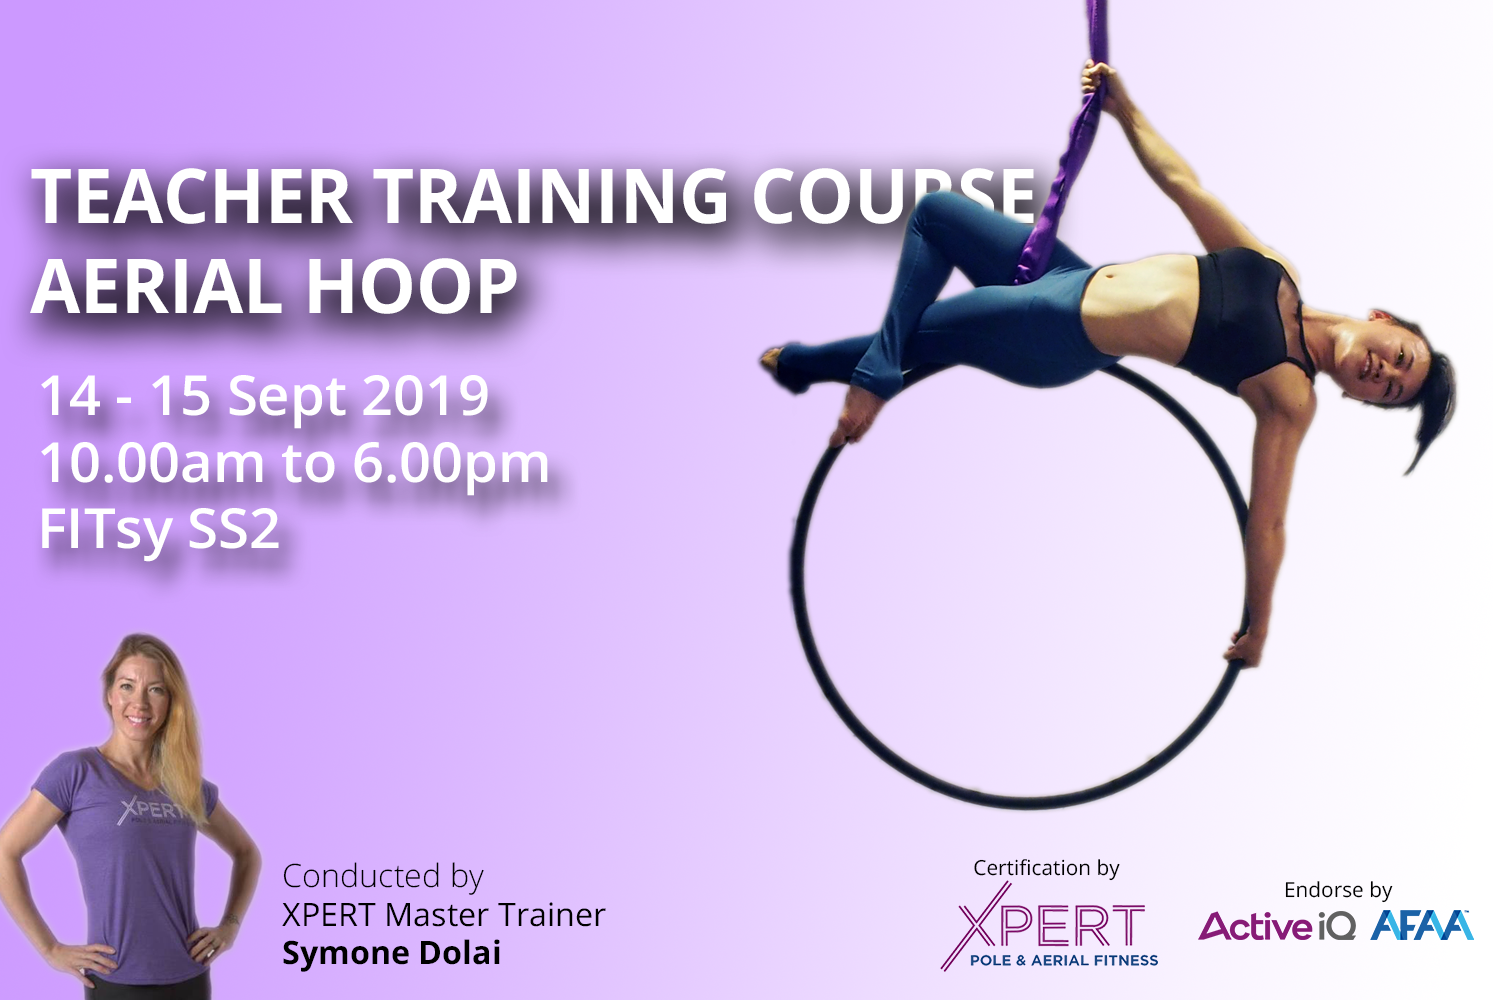 Aerial Hook / Lyra Teacher Training Course - Your journey to become instructor start here - Sept 2019 FITsy